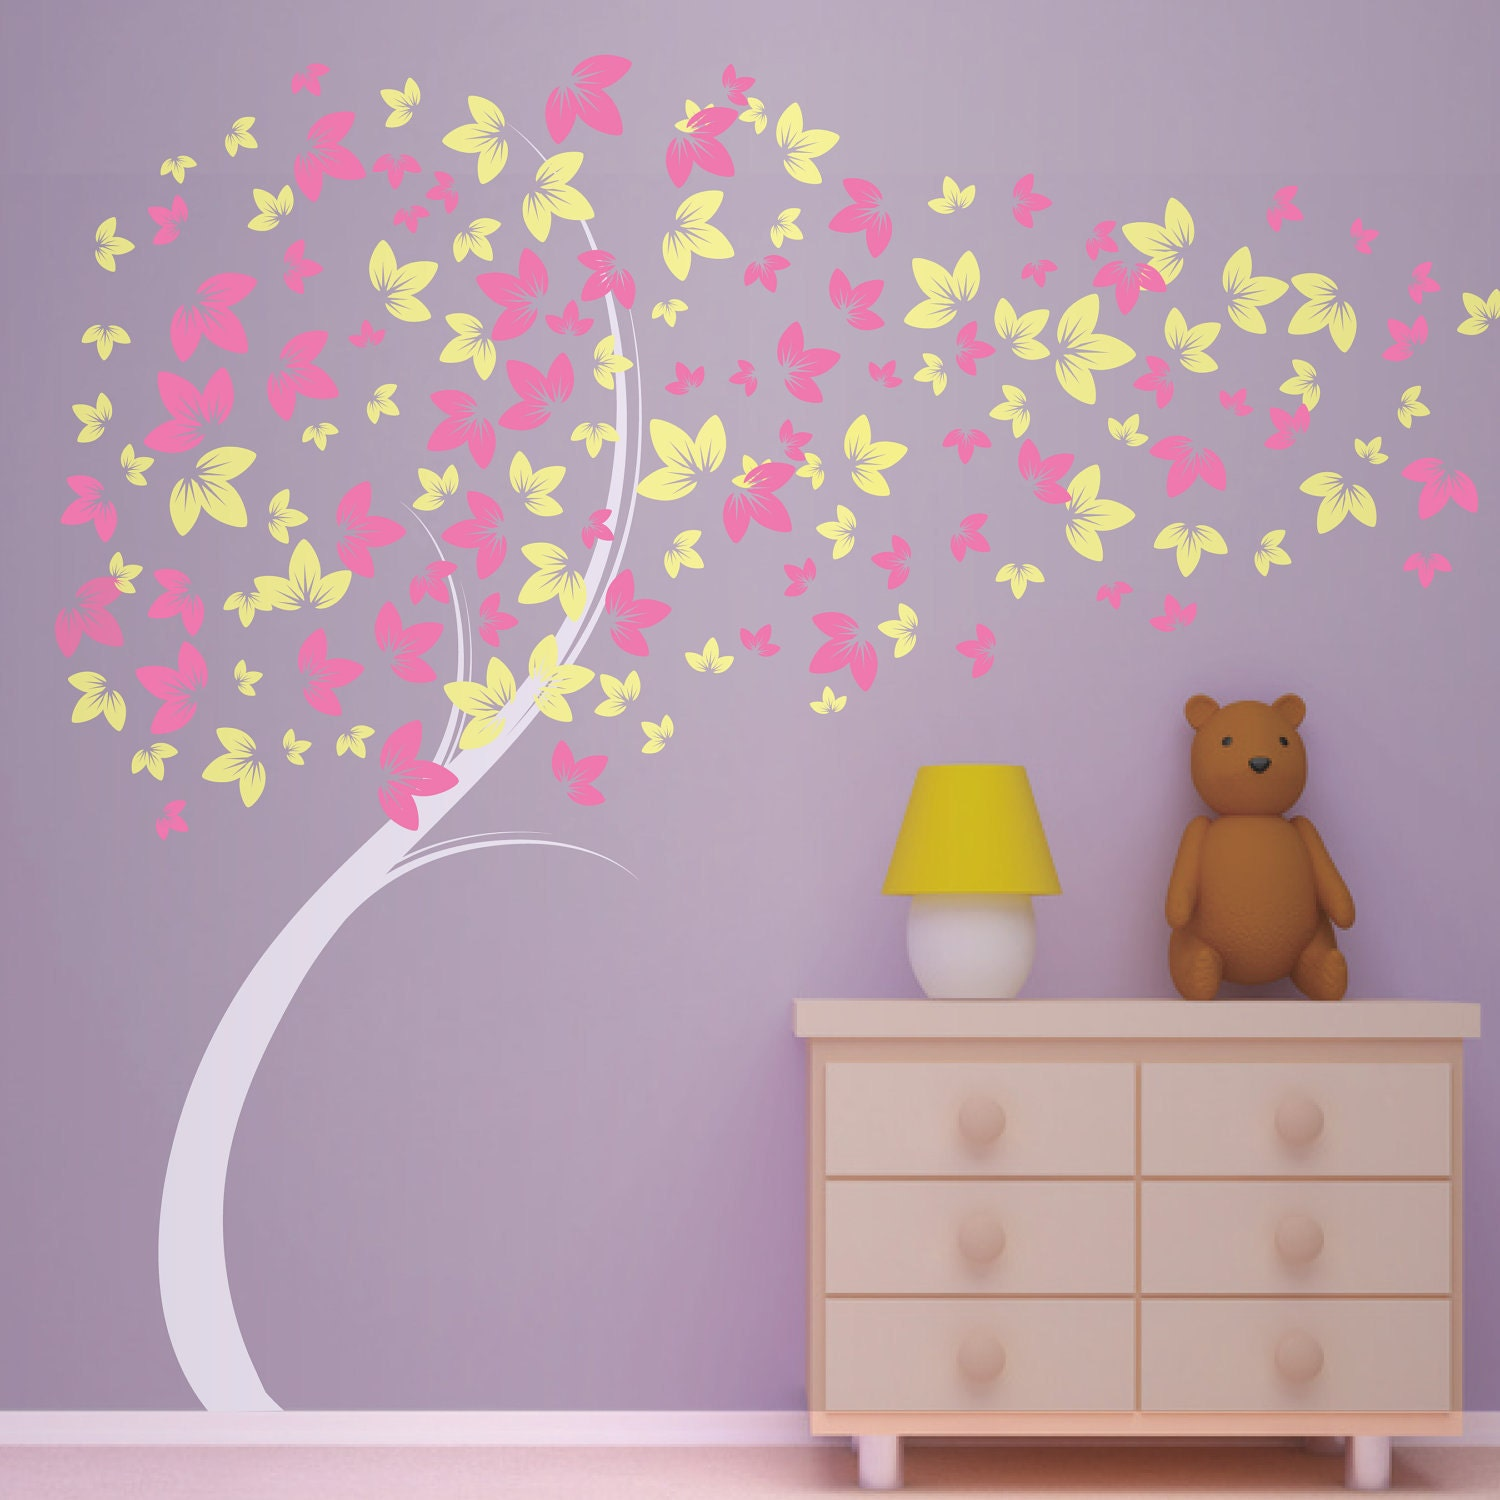 Curvy Blowing Tree Vinyl Wall Decal Great For Little